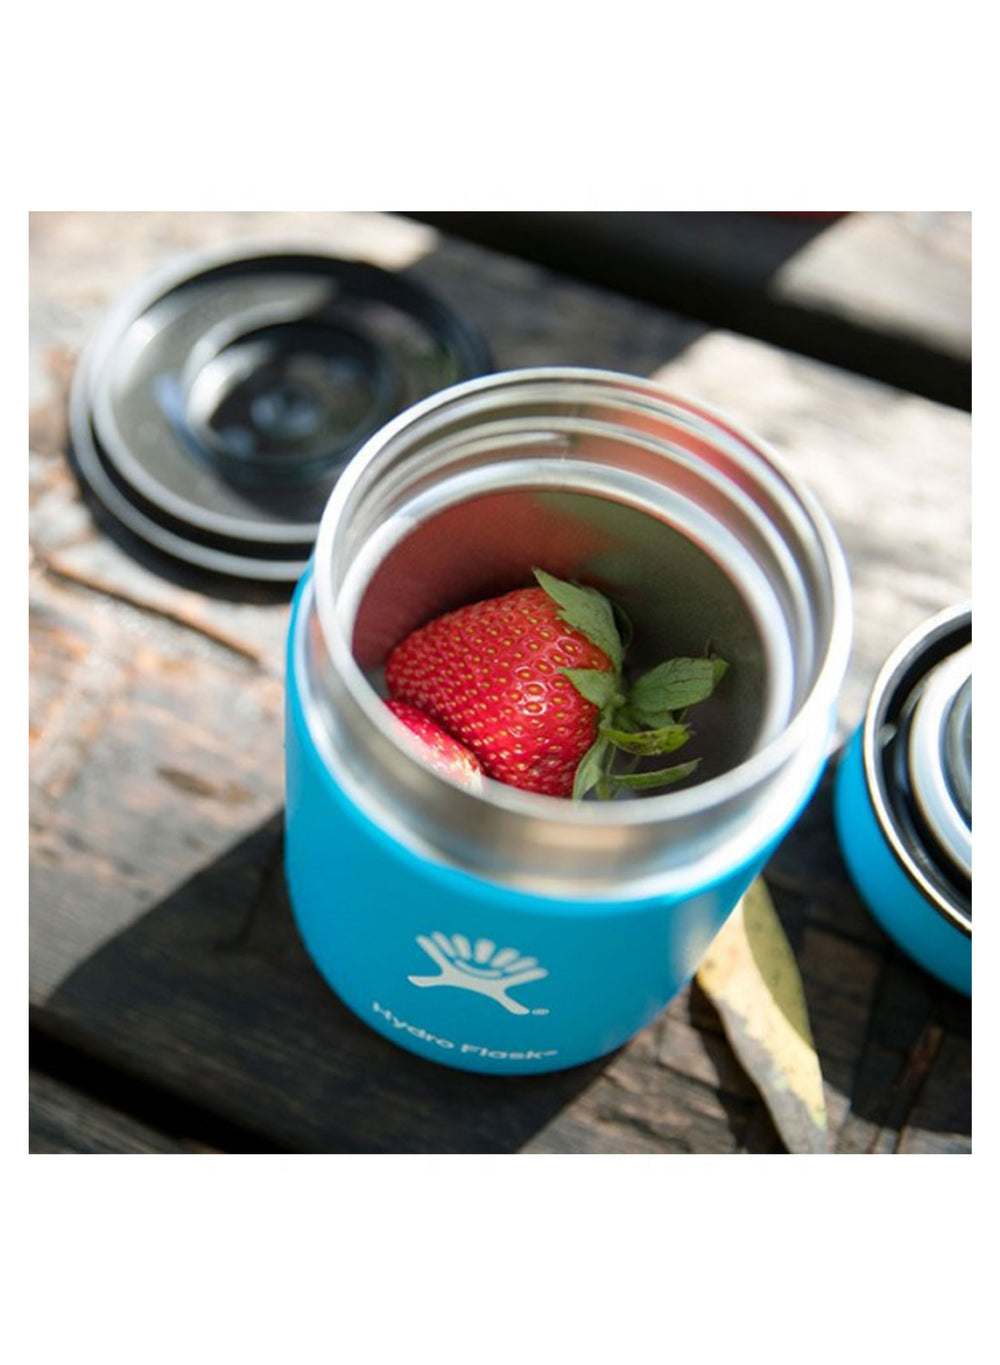 Hydro Flask 12 oz Food Flask